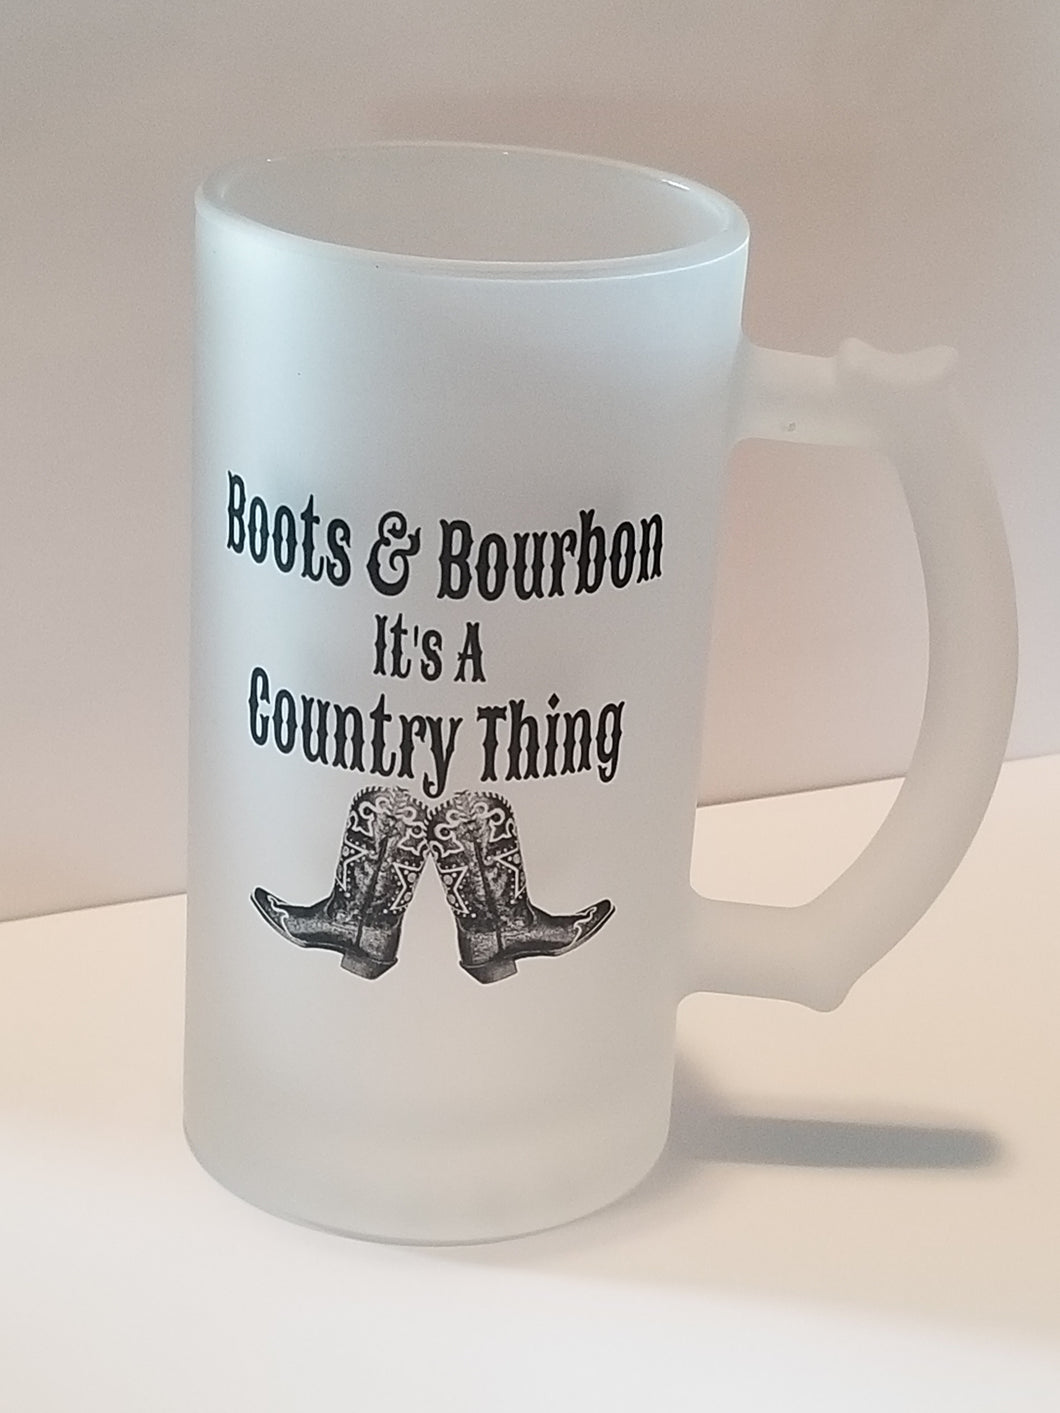 Bourbon & Boots Its A Country Thing Frosted Mug